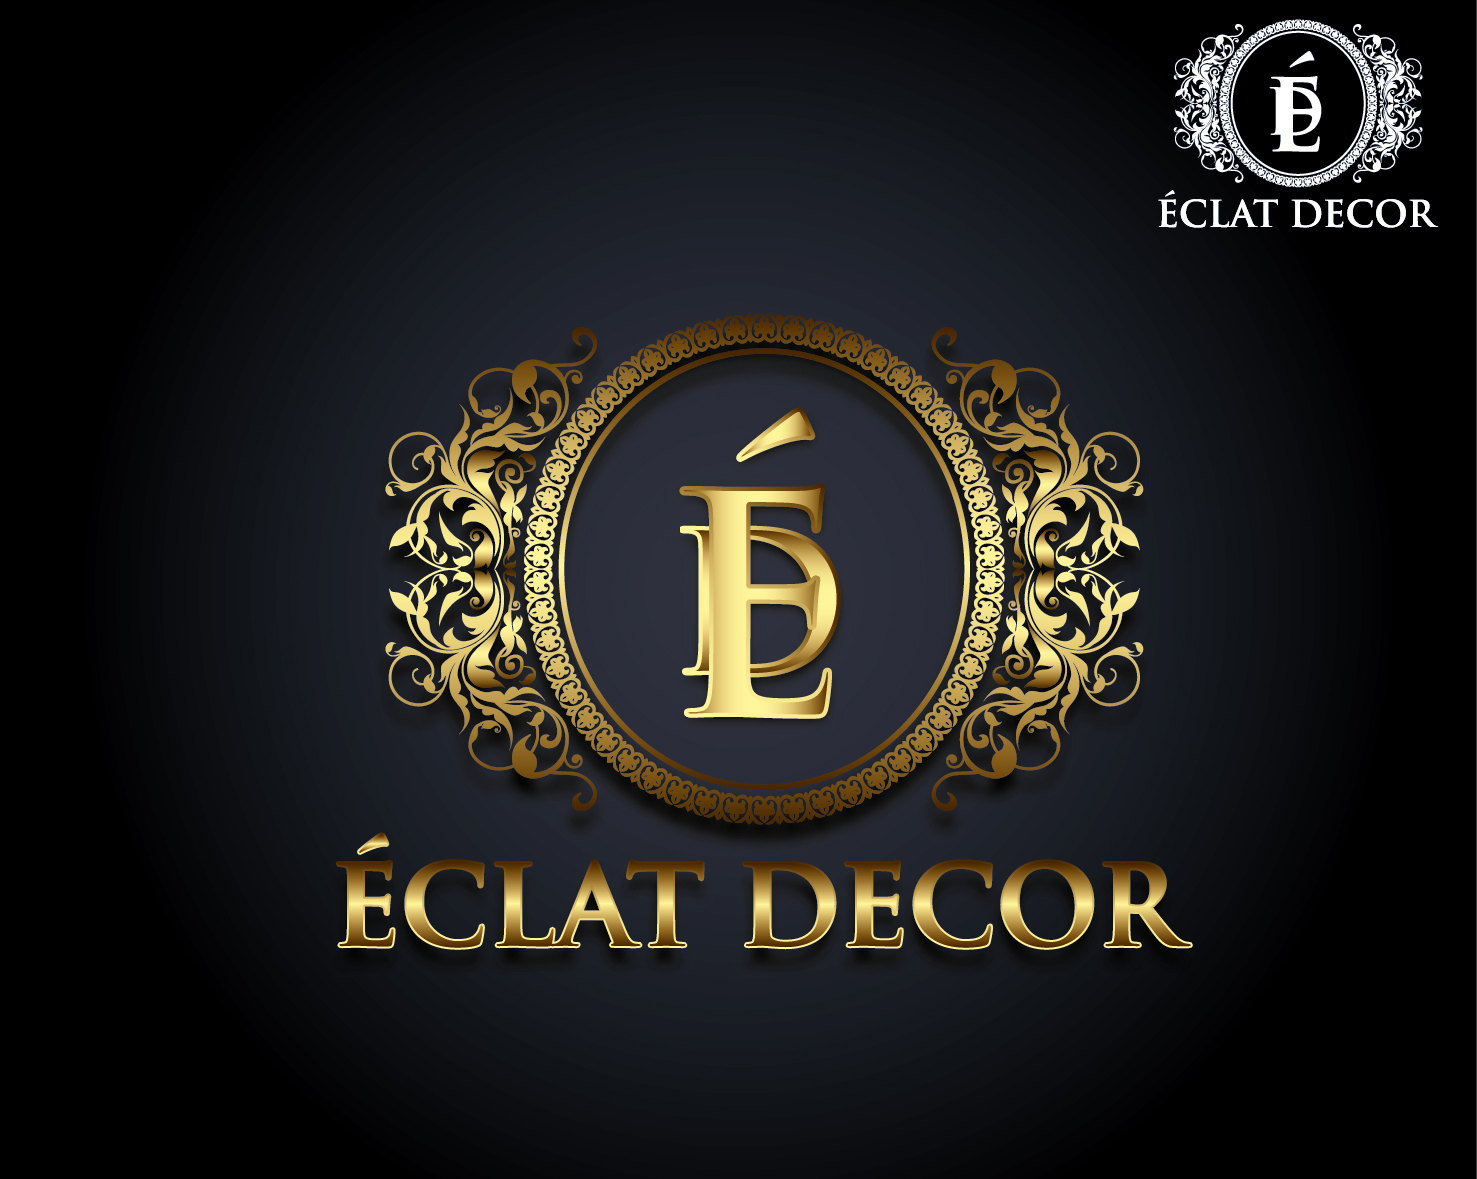 Logo Design by VENTSISLAV KOVACHEV - Entry No. 42 in the Logo Design Contest Imaginative Logo Design for Éclat Decor.